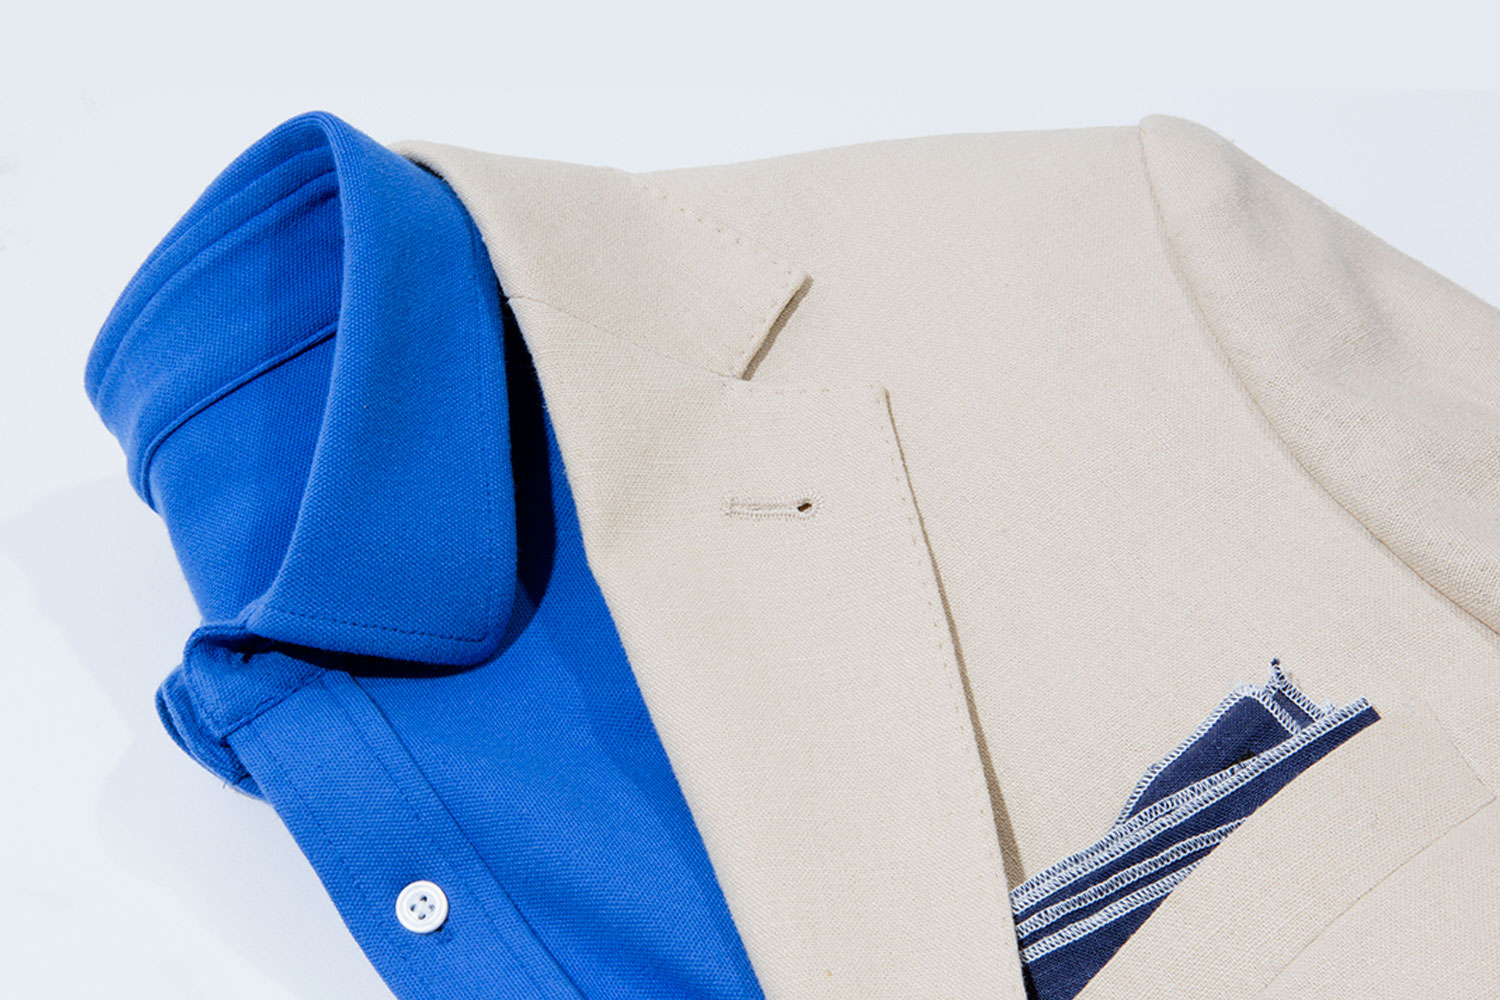 Polos + Suits and Sportcoats